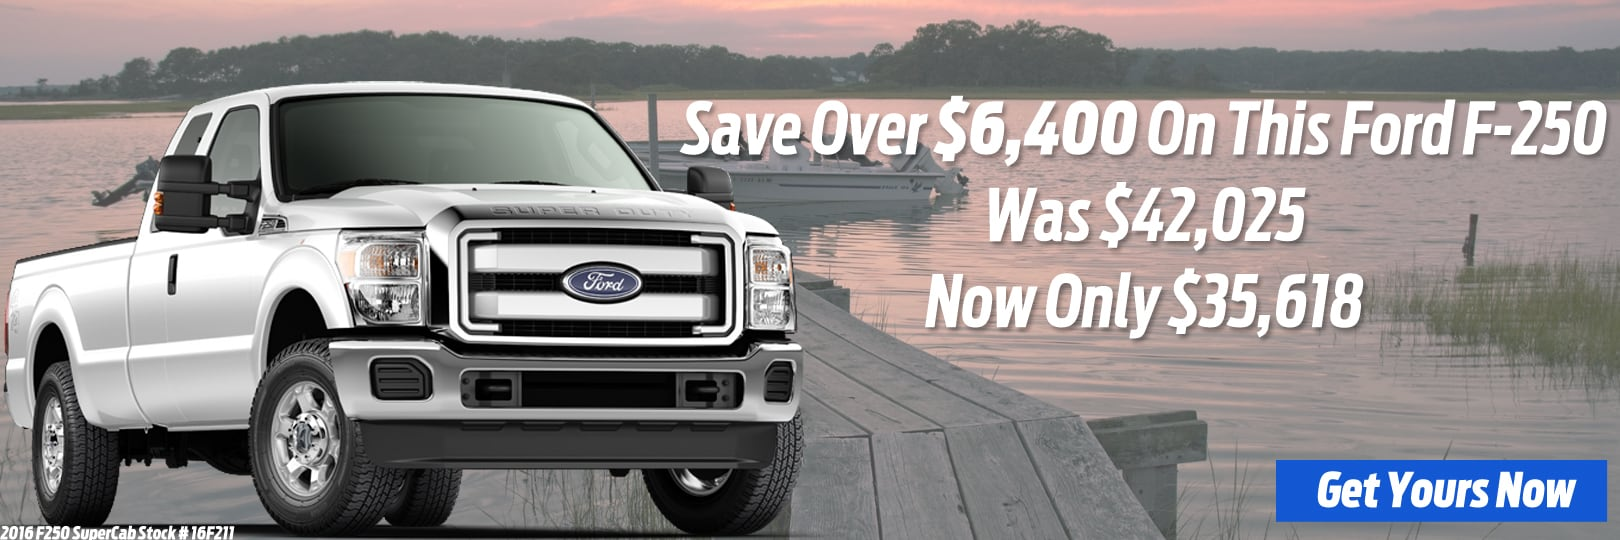 Crest Ford is the BEST Ford Dealer in CT | New London County ...